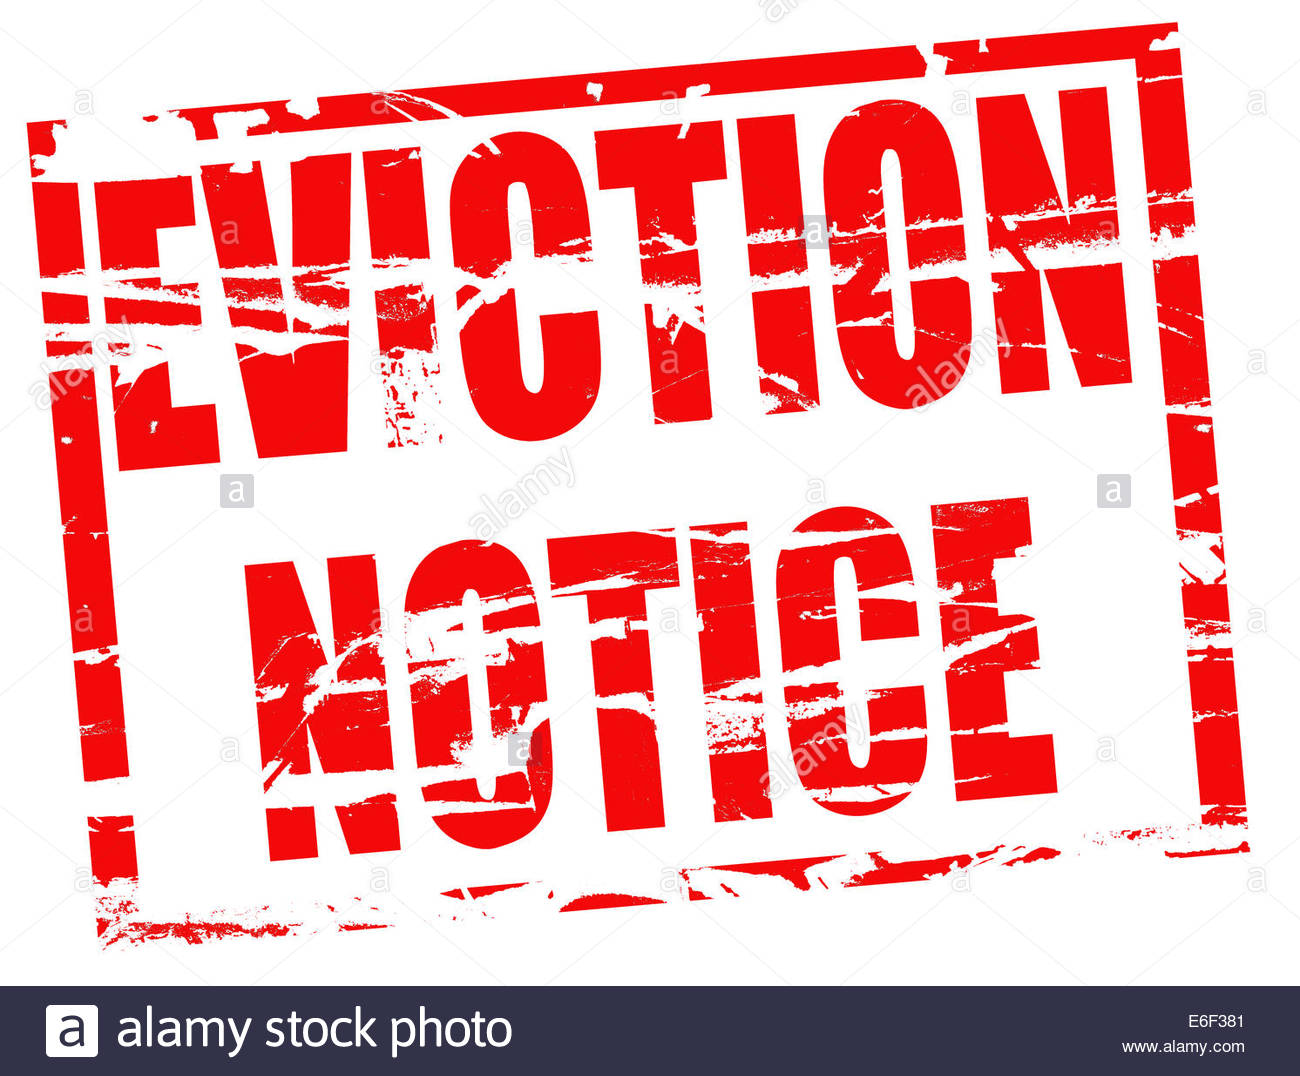 Digital illustration concept eviction notice stock photo digital illustration concept eviction notice thecheapjerseys Gallery